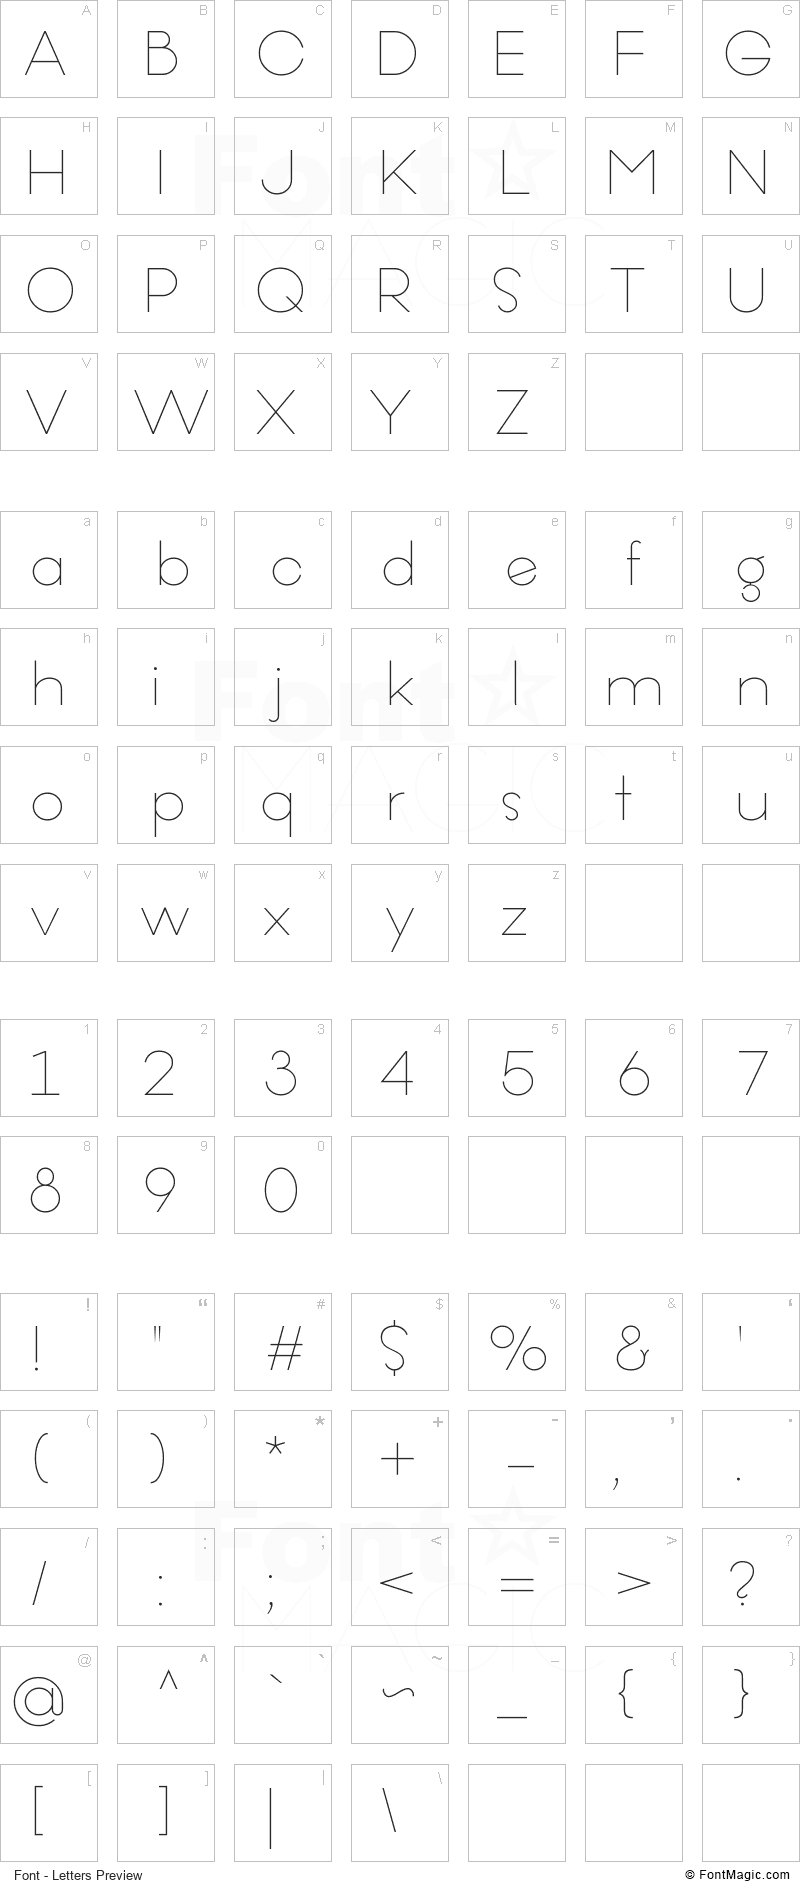 Offerings Font - All Latters Preview Chart